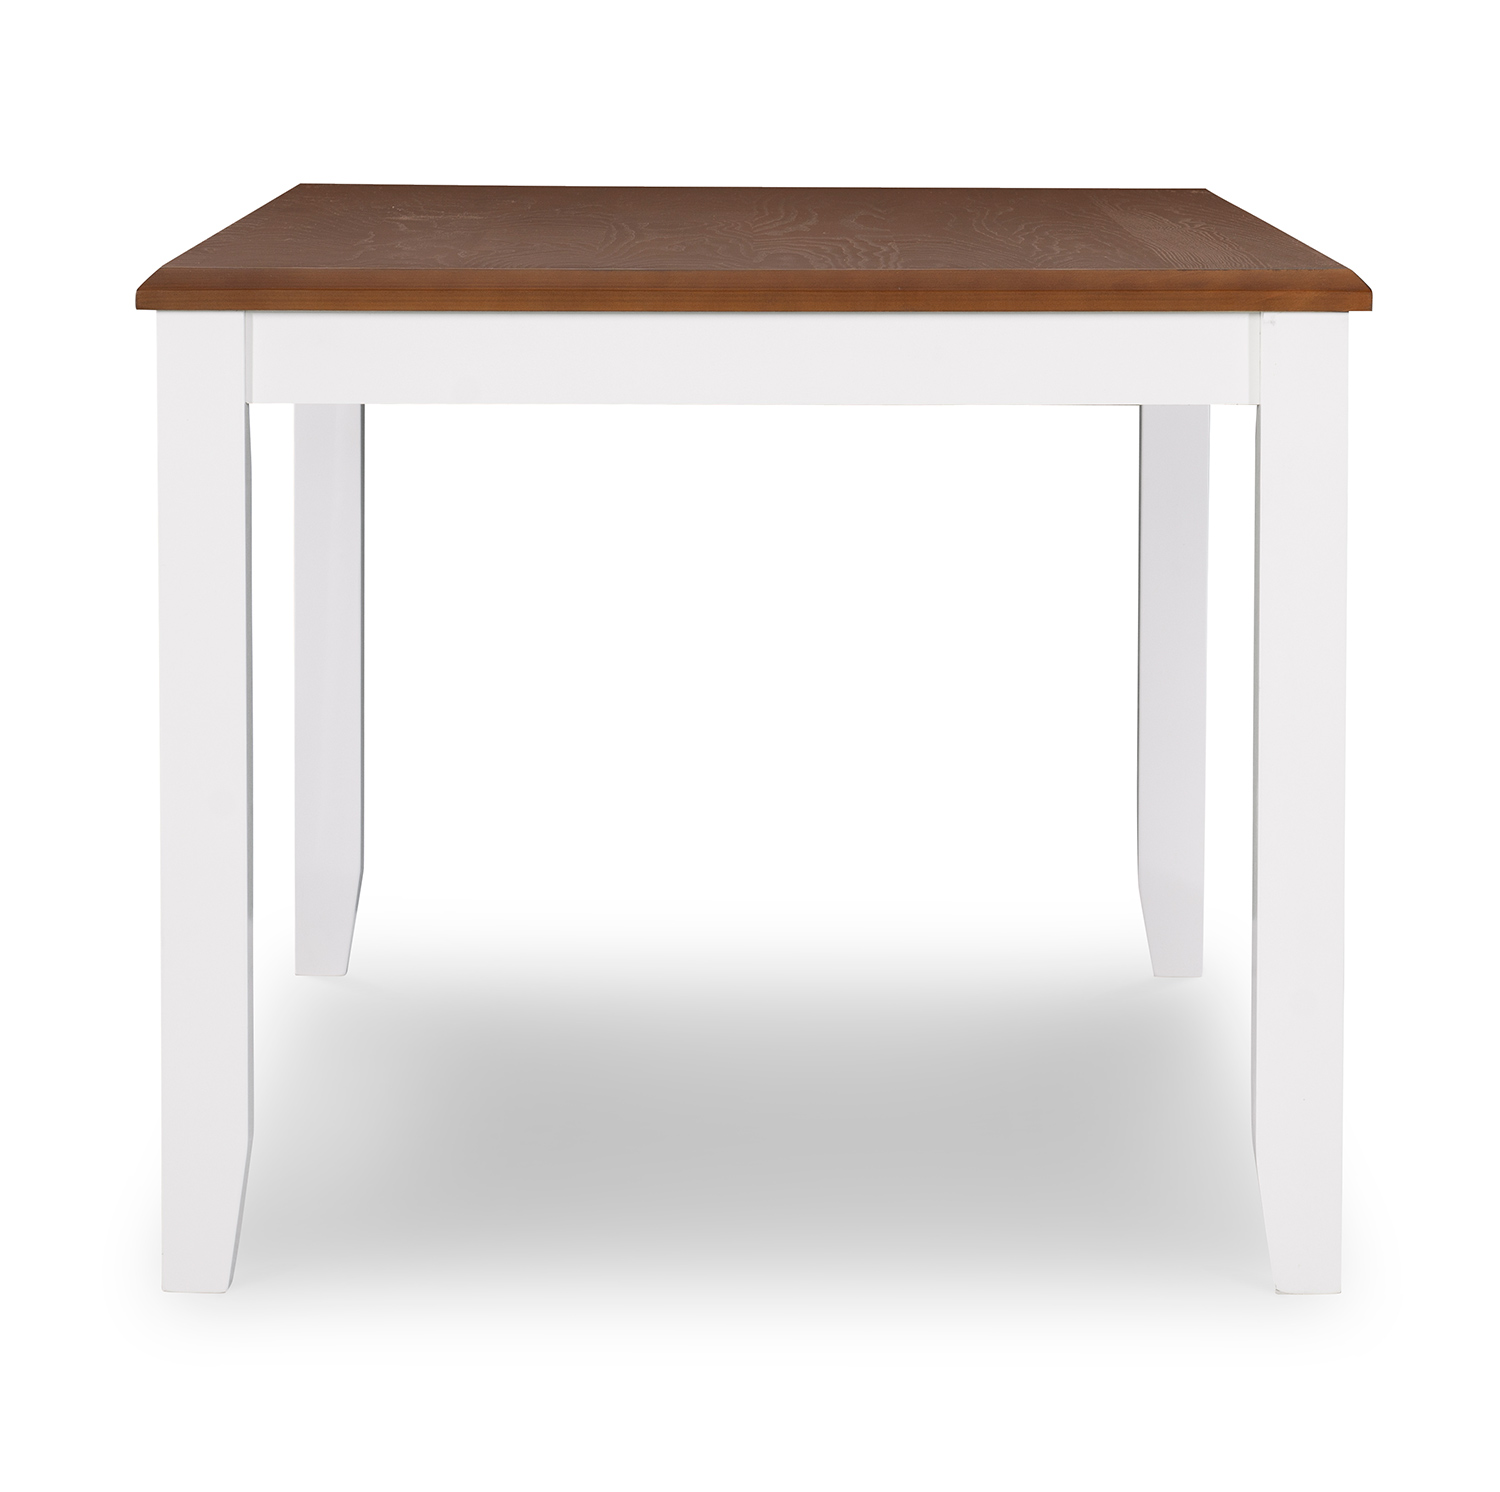 Powell Jane Dining Table - Brown